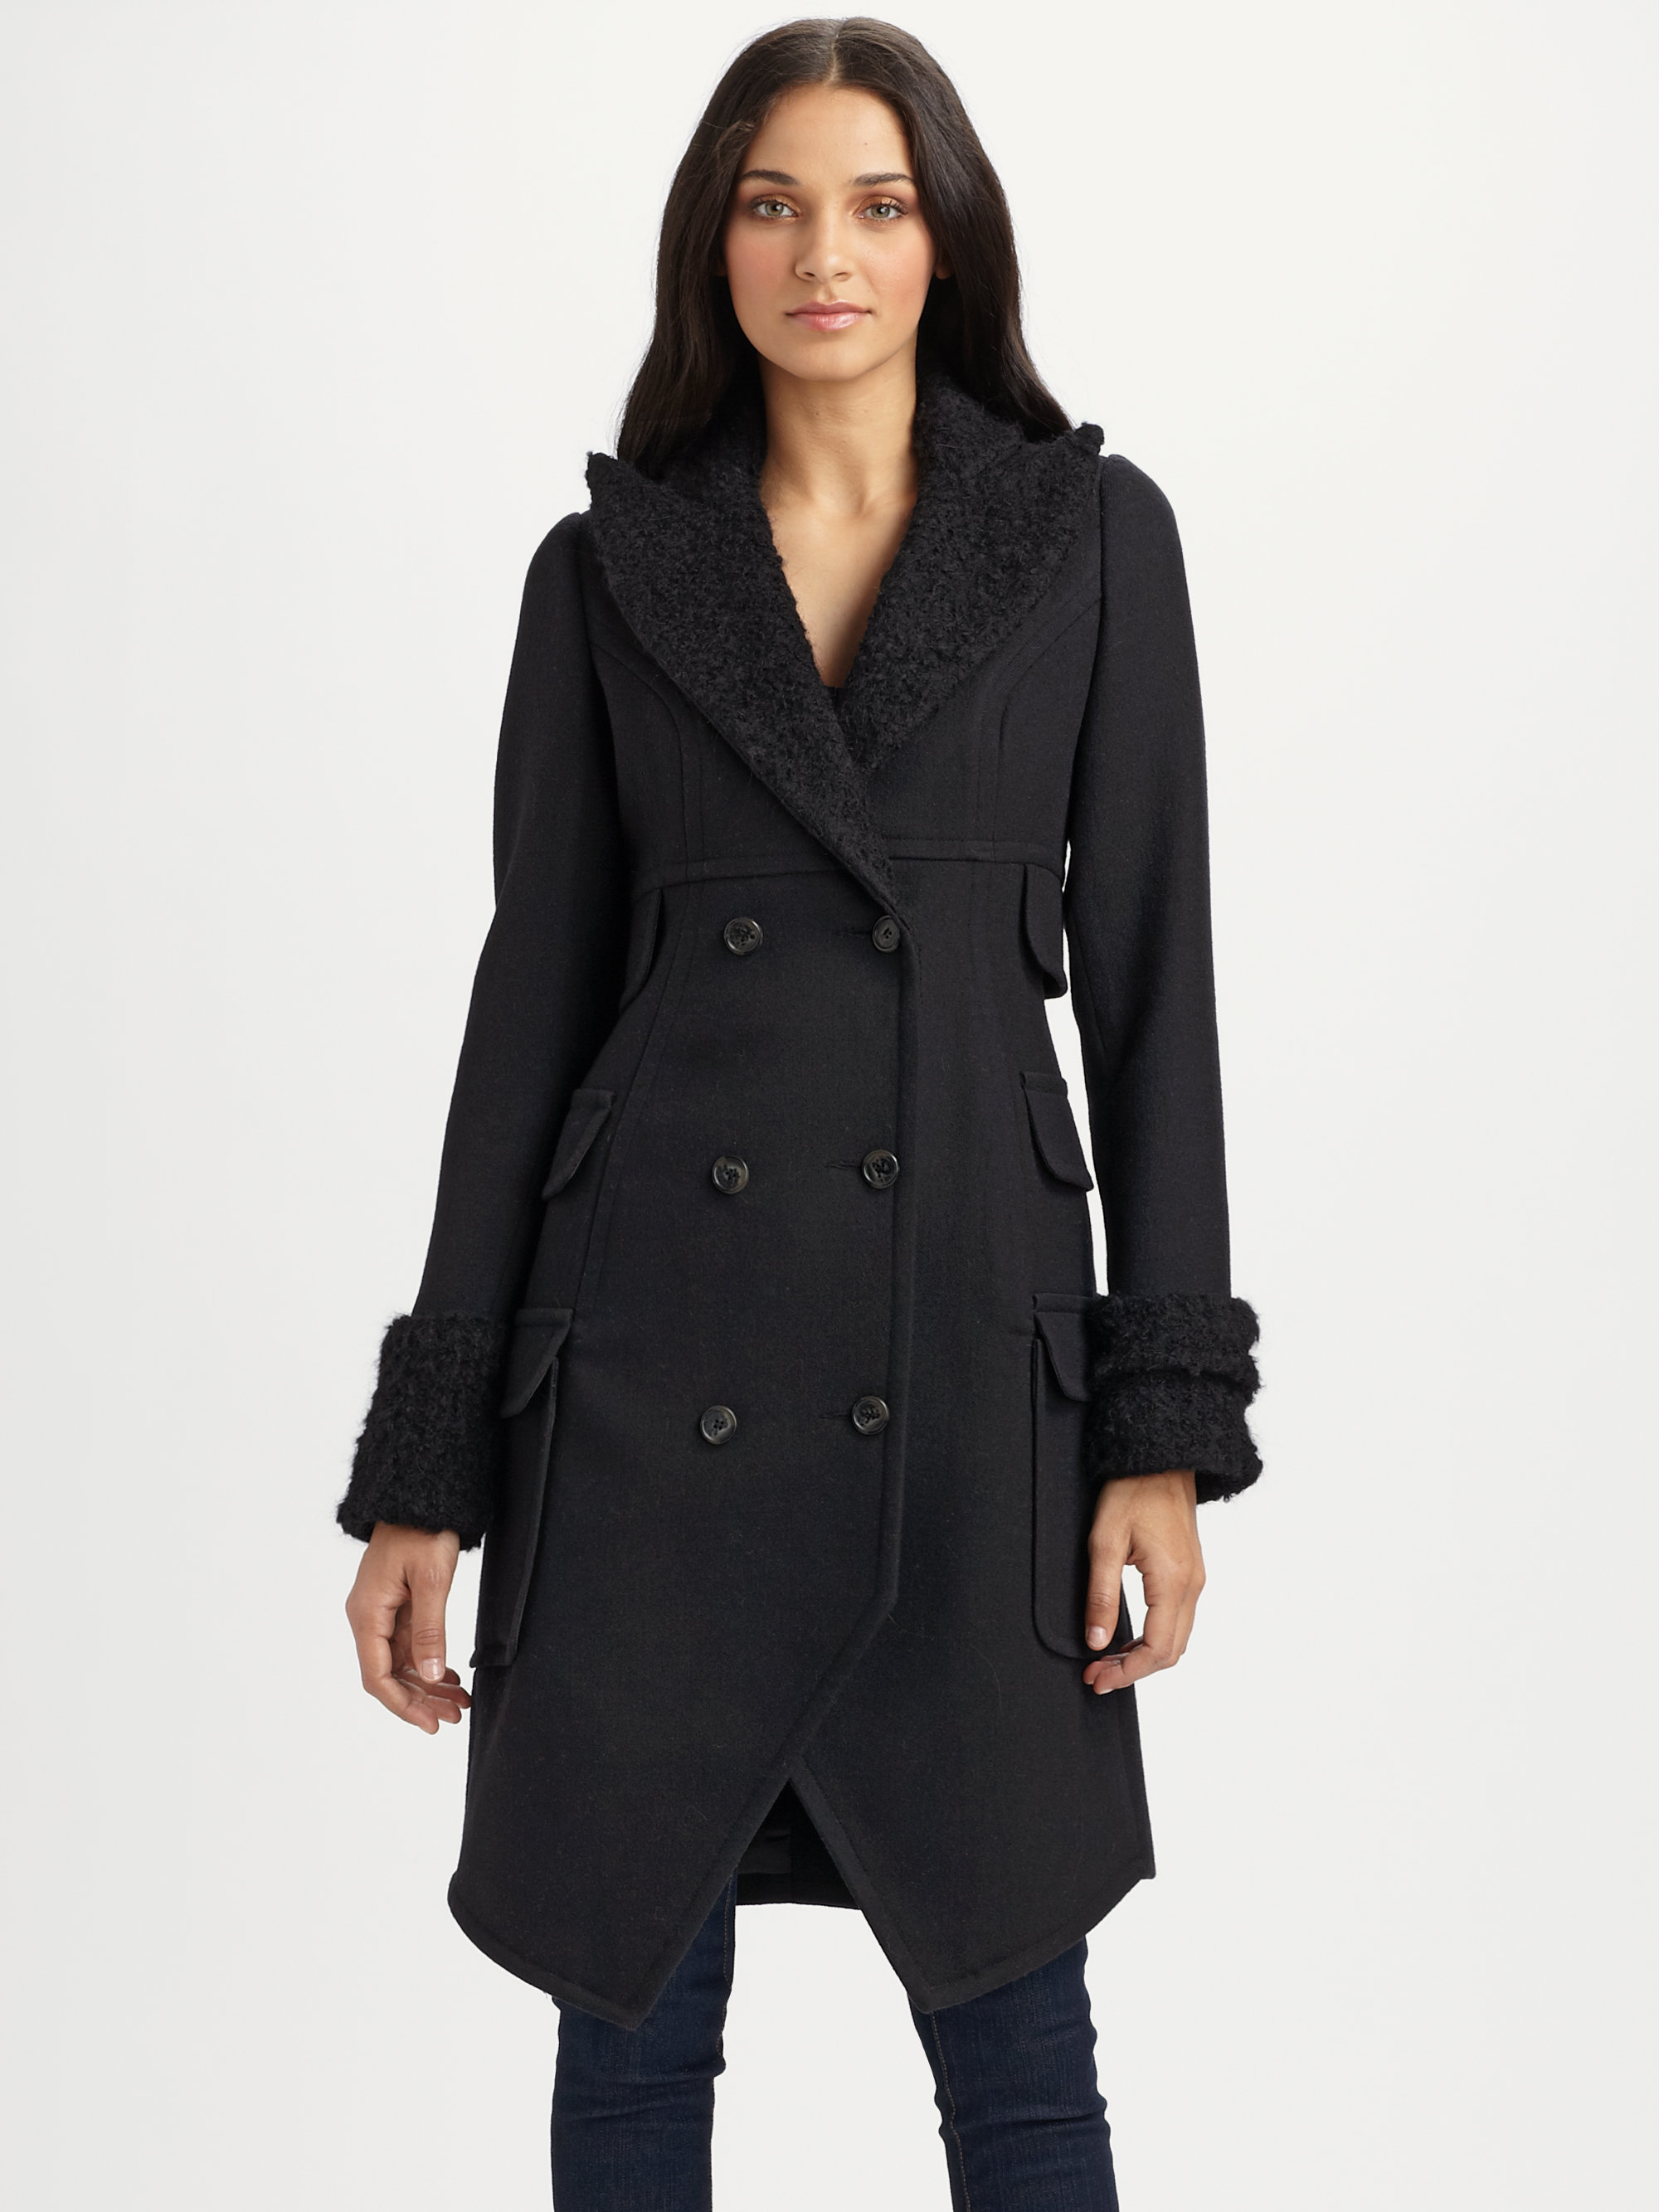 Smythe Wool Midi Coat In Black Lyst